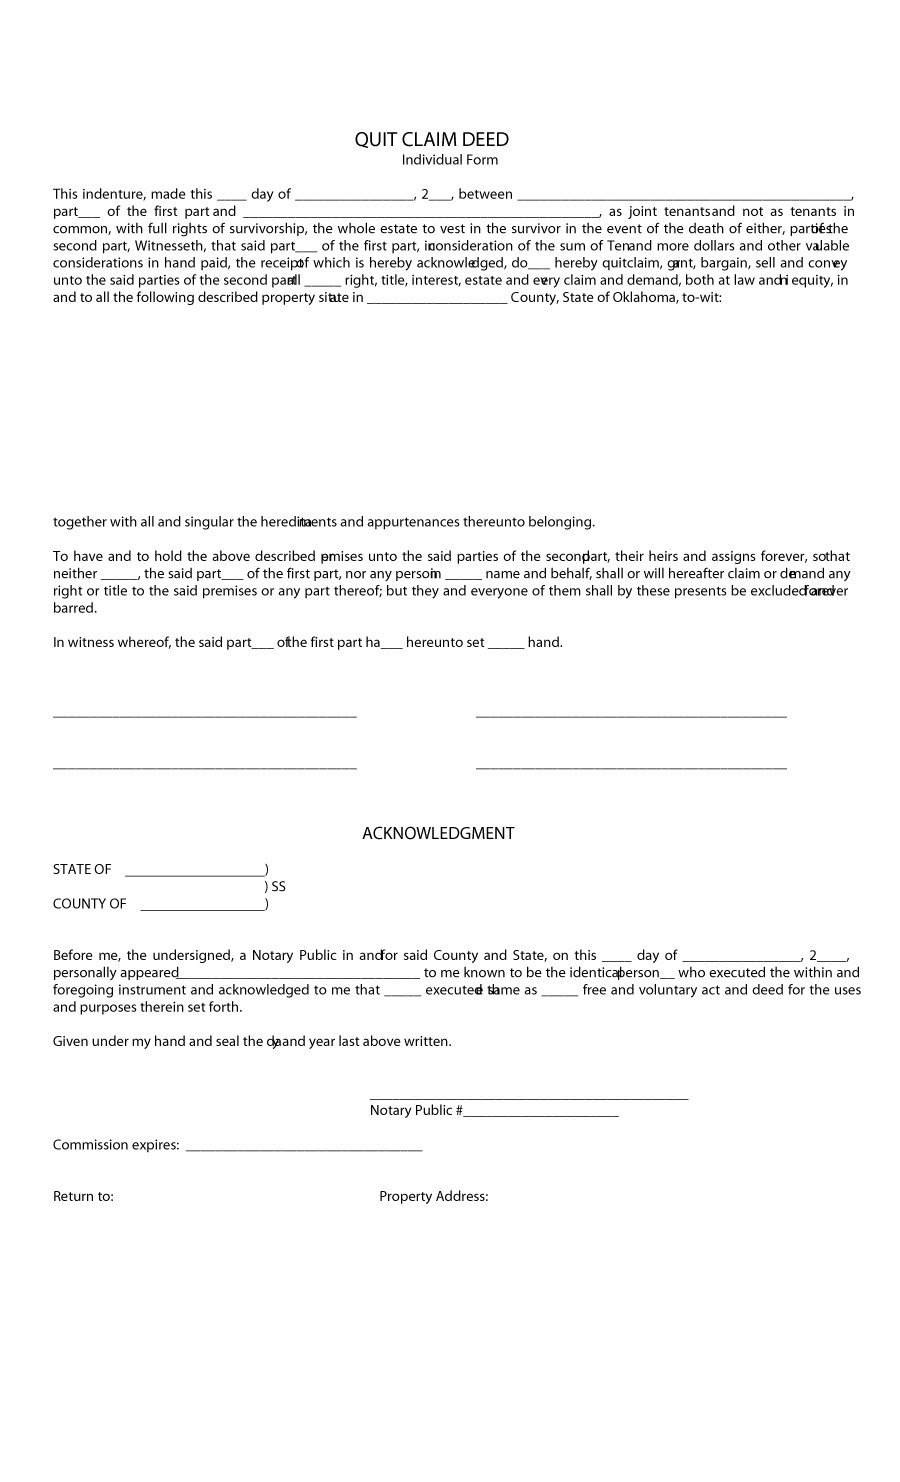 quit-claim-deed-template-11